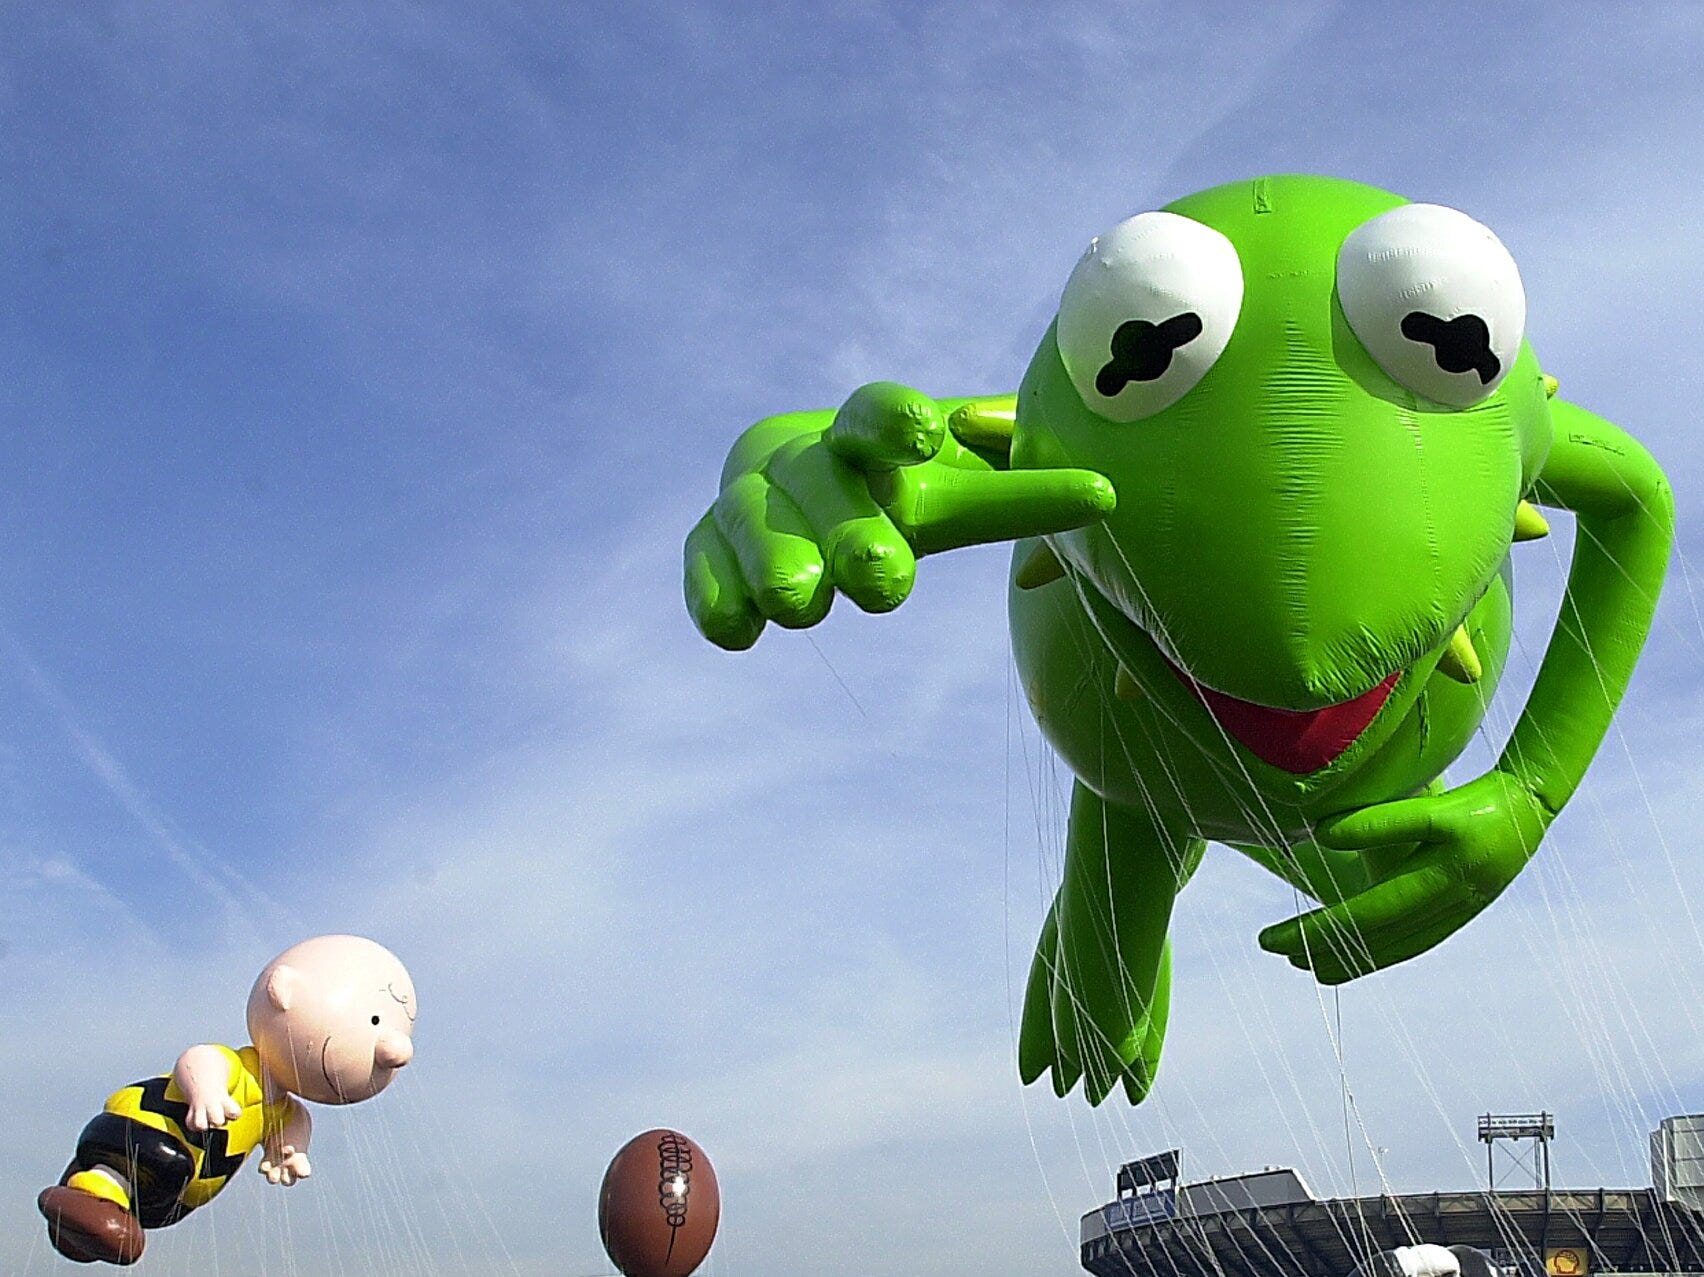 -  -Balloon handlers take the new Kermit the Frog and Charlie Brown balloons for a test flight at The Meadowlands Sports Complex in East Rutherford, NJ on Saturday, November 9, 2002. The balloonfest is held every year to give a trial run to new balloons before the Macy's Thanksgiving Day parade.(Rohanna Mertens for The Journal News11/09/02)